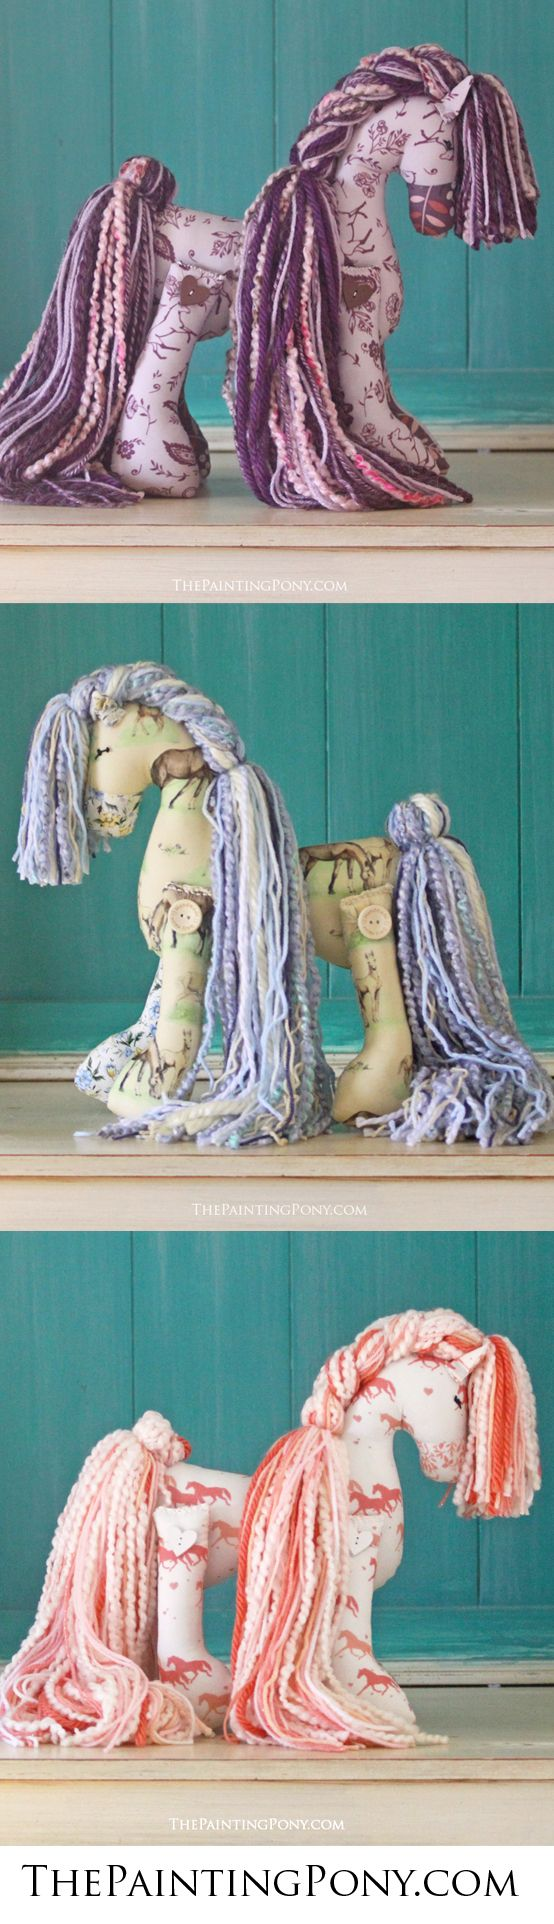 CUTE gifts for the horse lover! Equestrian ponies for the horse addicted or anyone who loves horses, pony, and horseback riding.